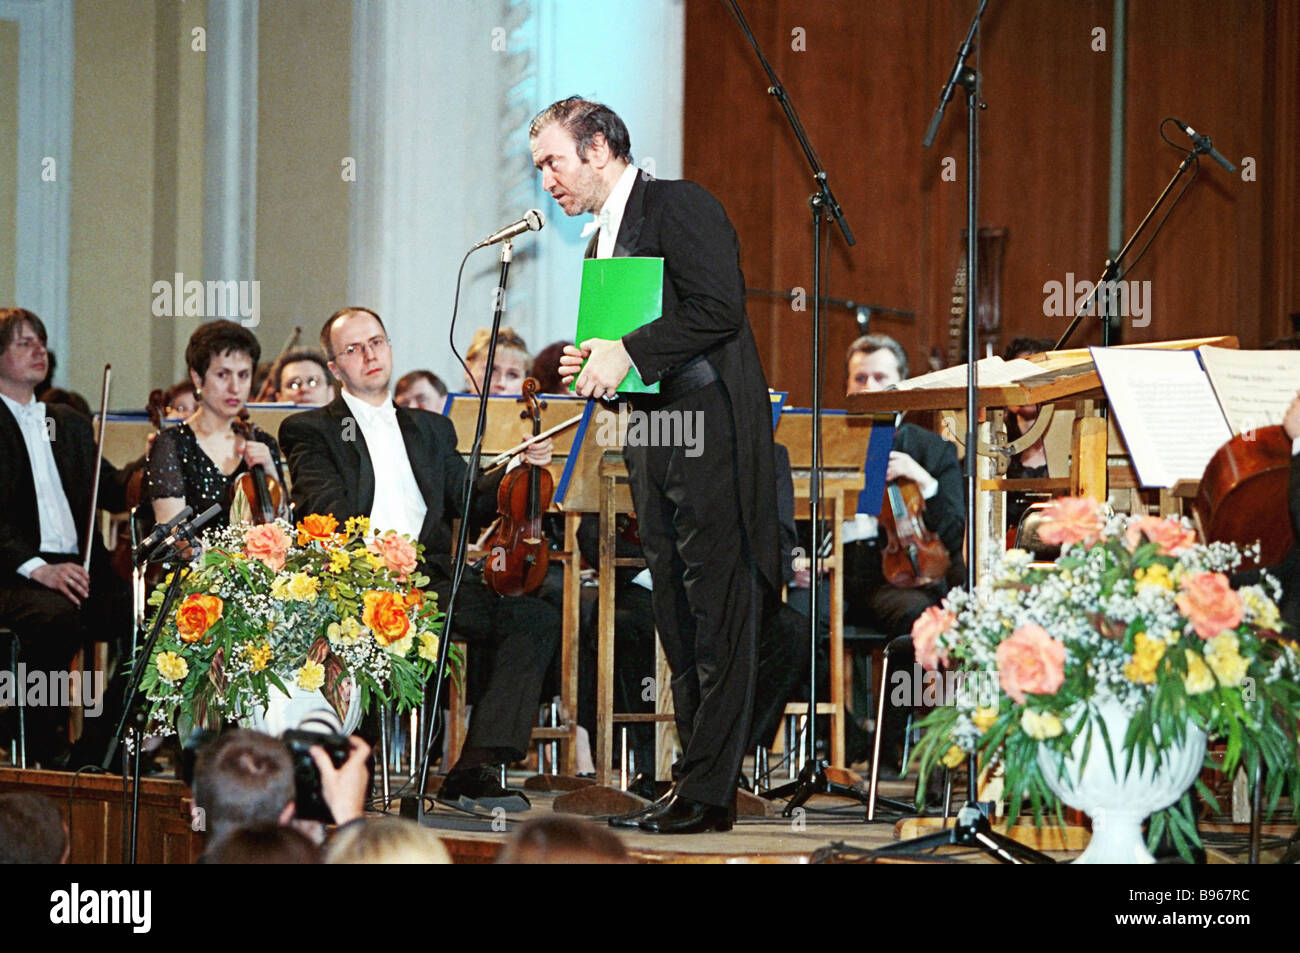 Valery Gergiyev, art director of the First Moscow Easter Day Festival, performing at the Moscow Conservatoire's - Stock Image